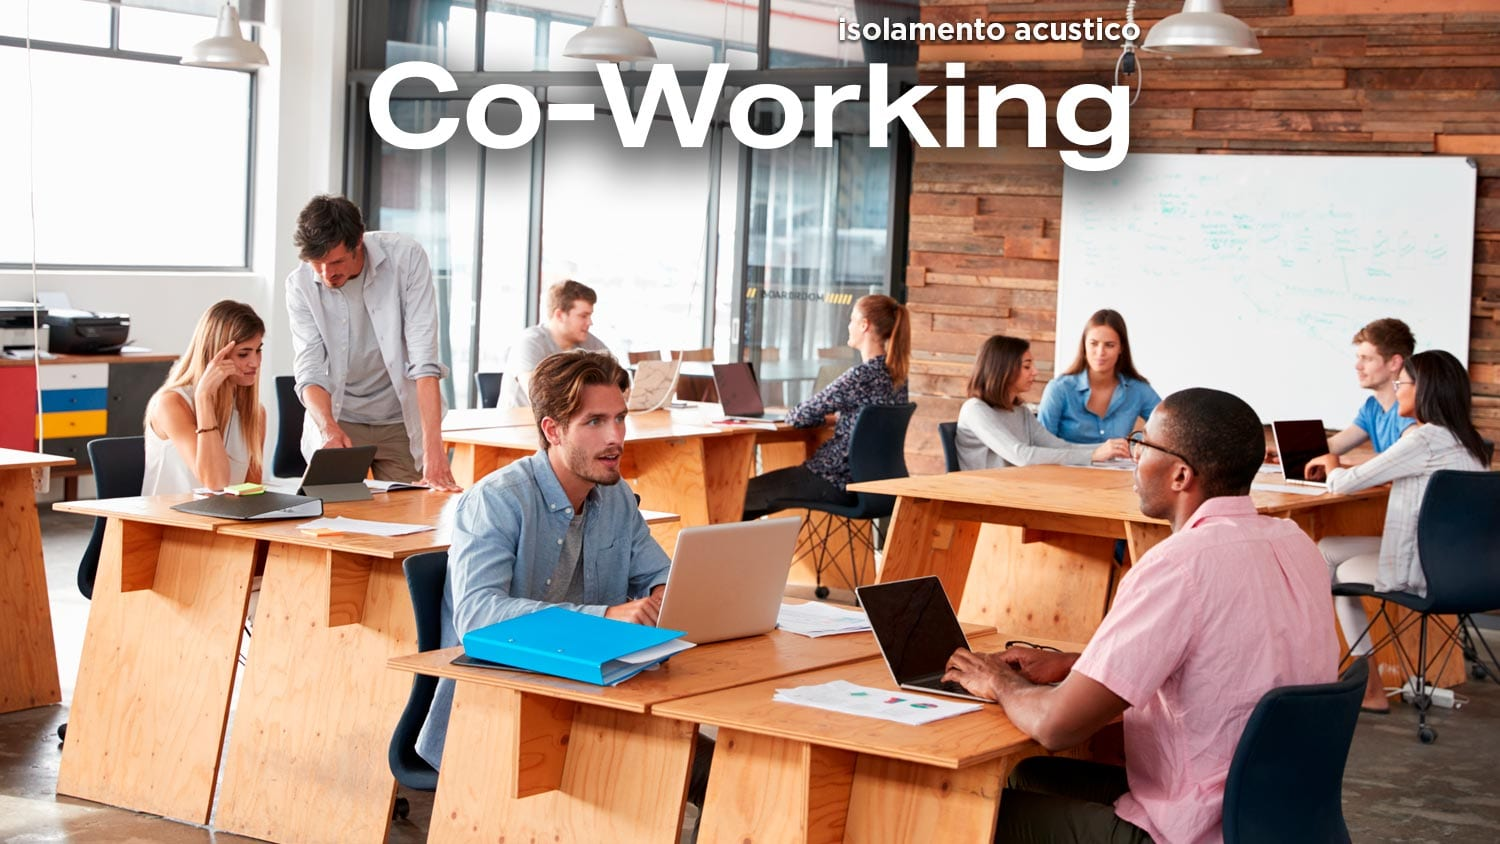 Isolamento acustico Co-Working